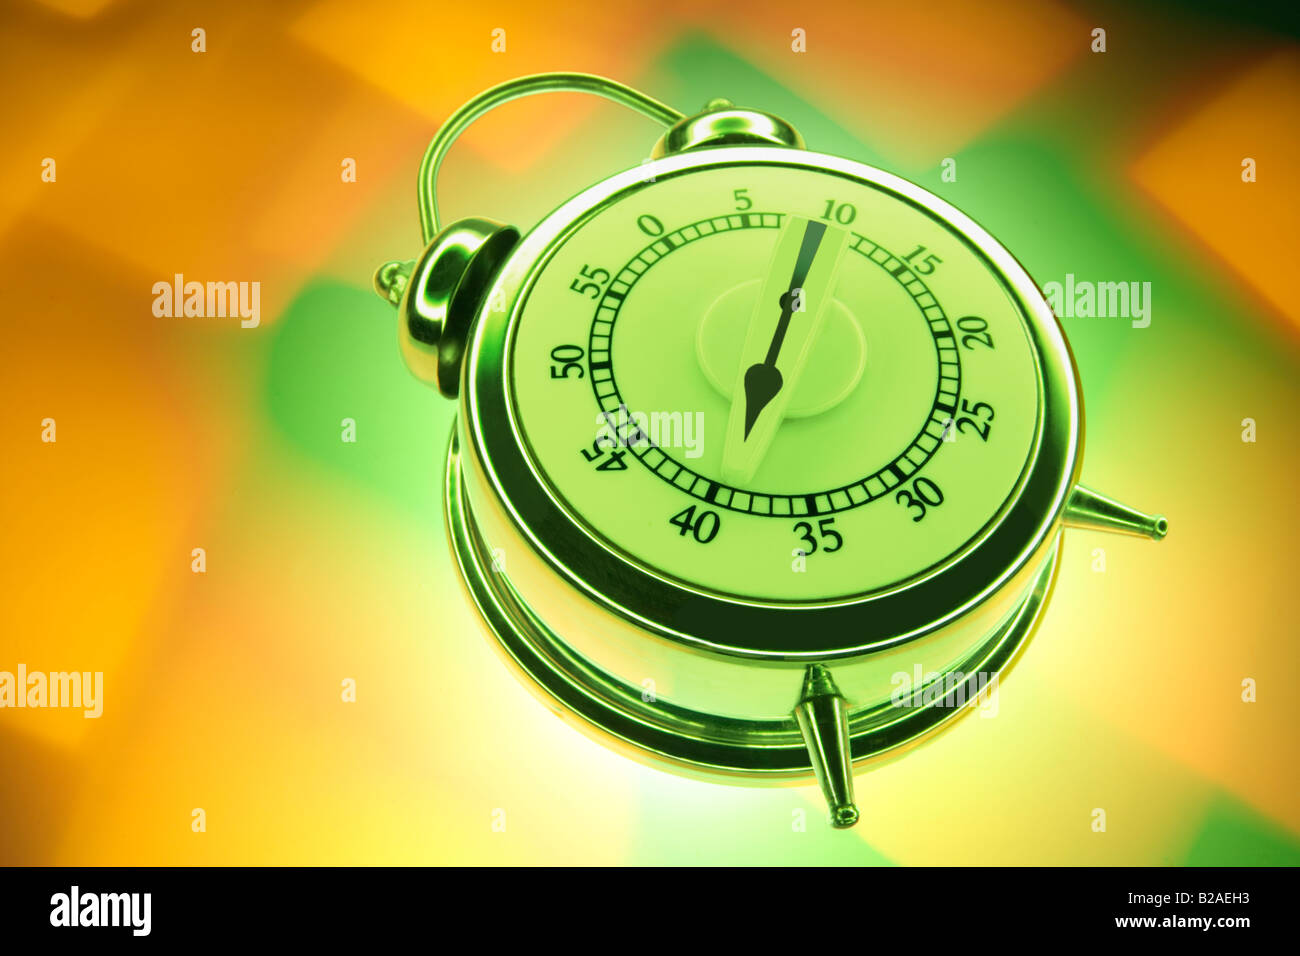 Clock Timer - Stock Image